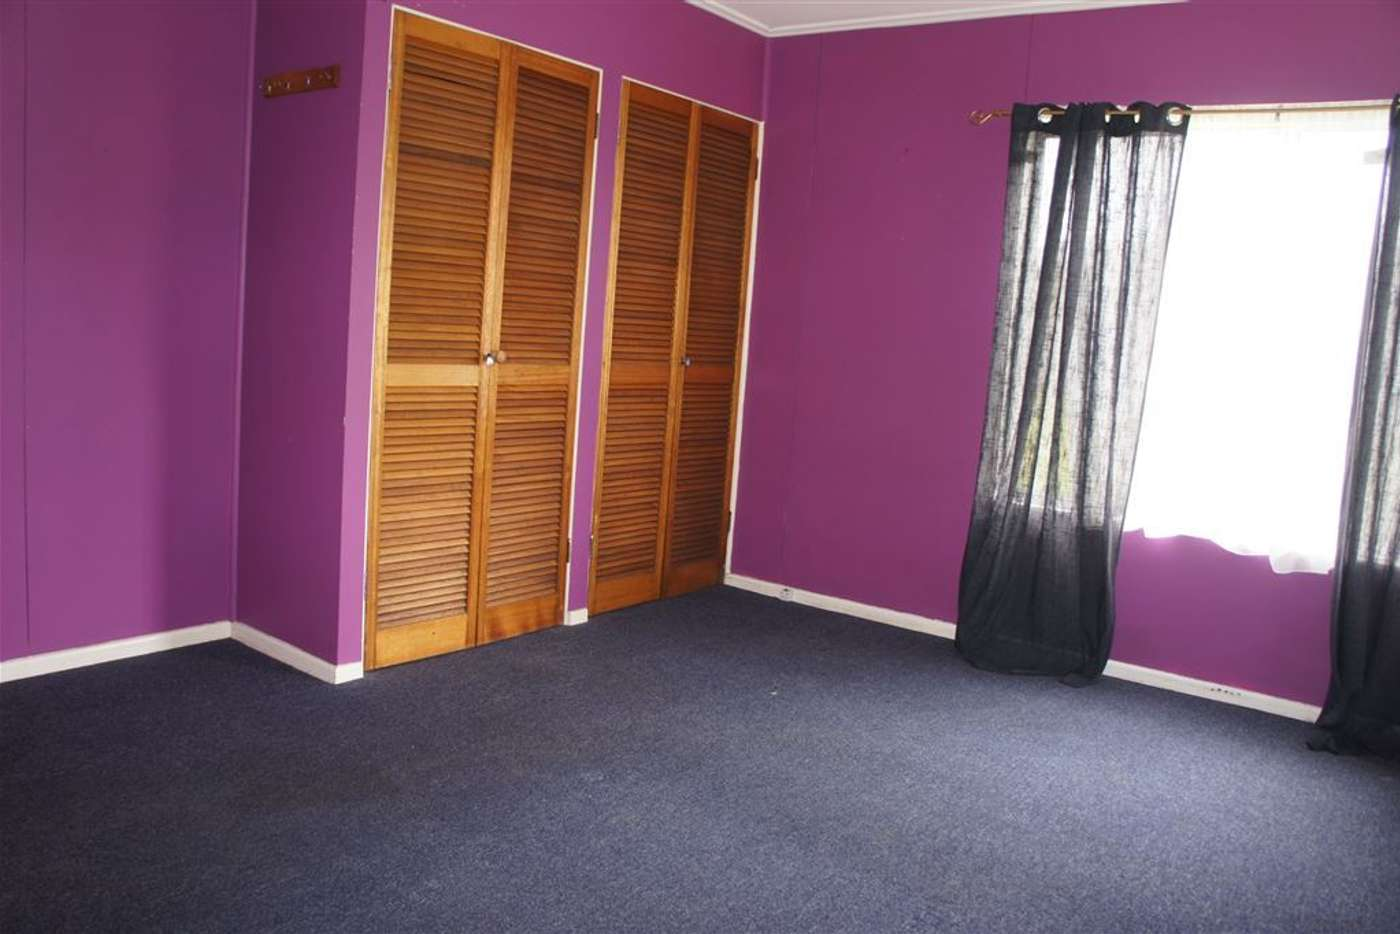 Sixth view of Homely house listing, 8 Counsel St, Zeehan TAS 7469